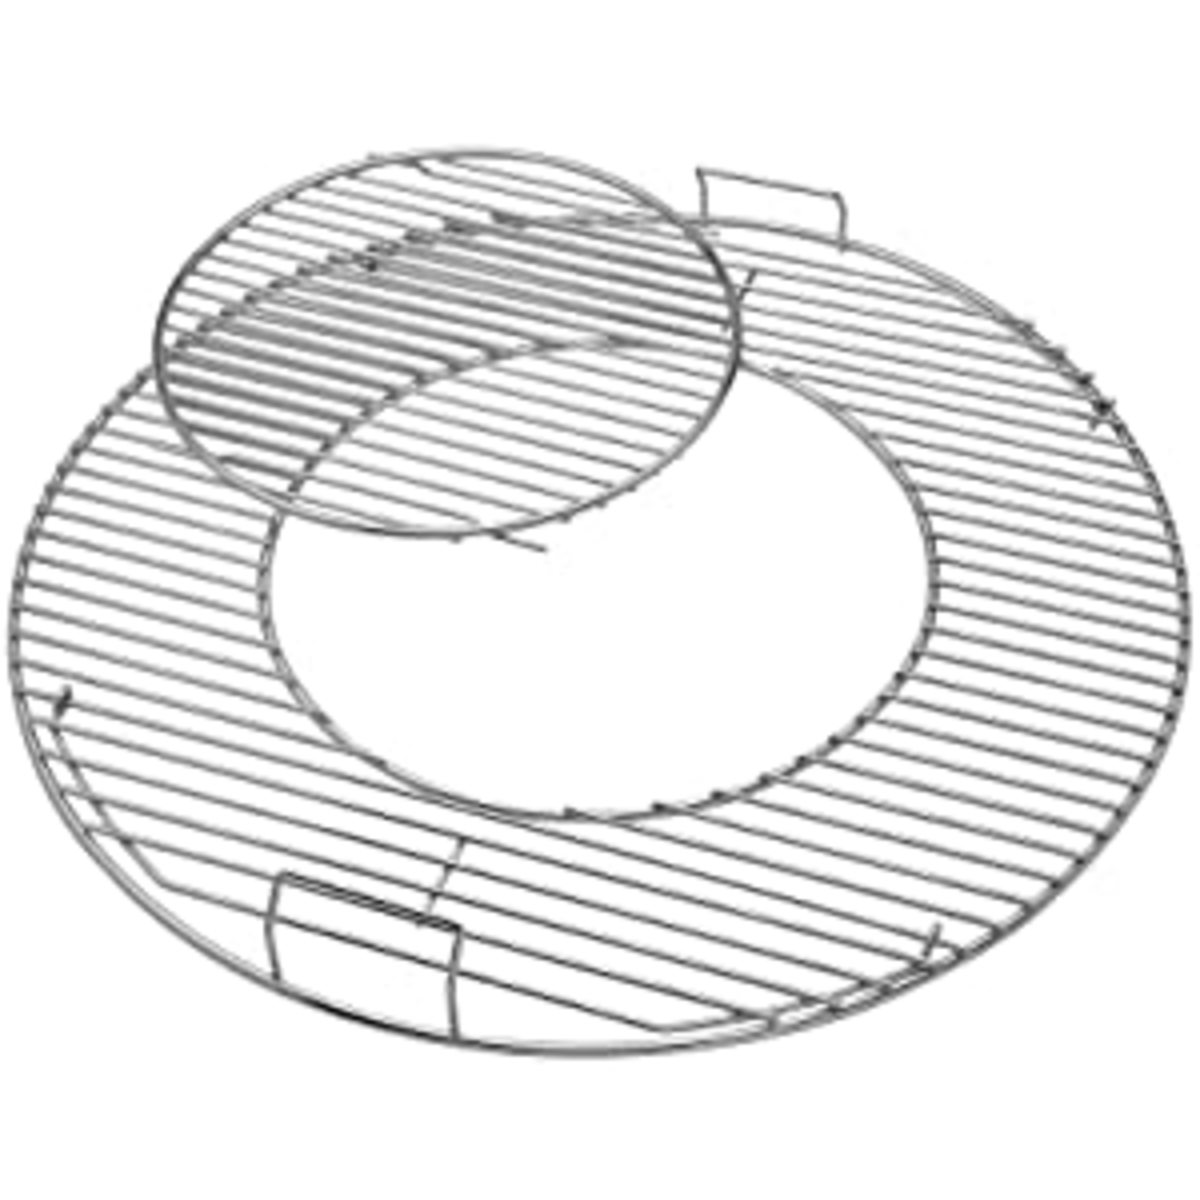 Use this removable center grill grate for your coal-fired grill to place your wok over when you do stir fry recipe